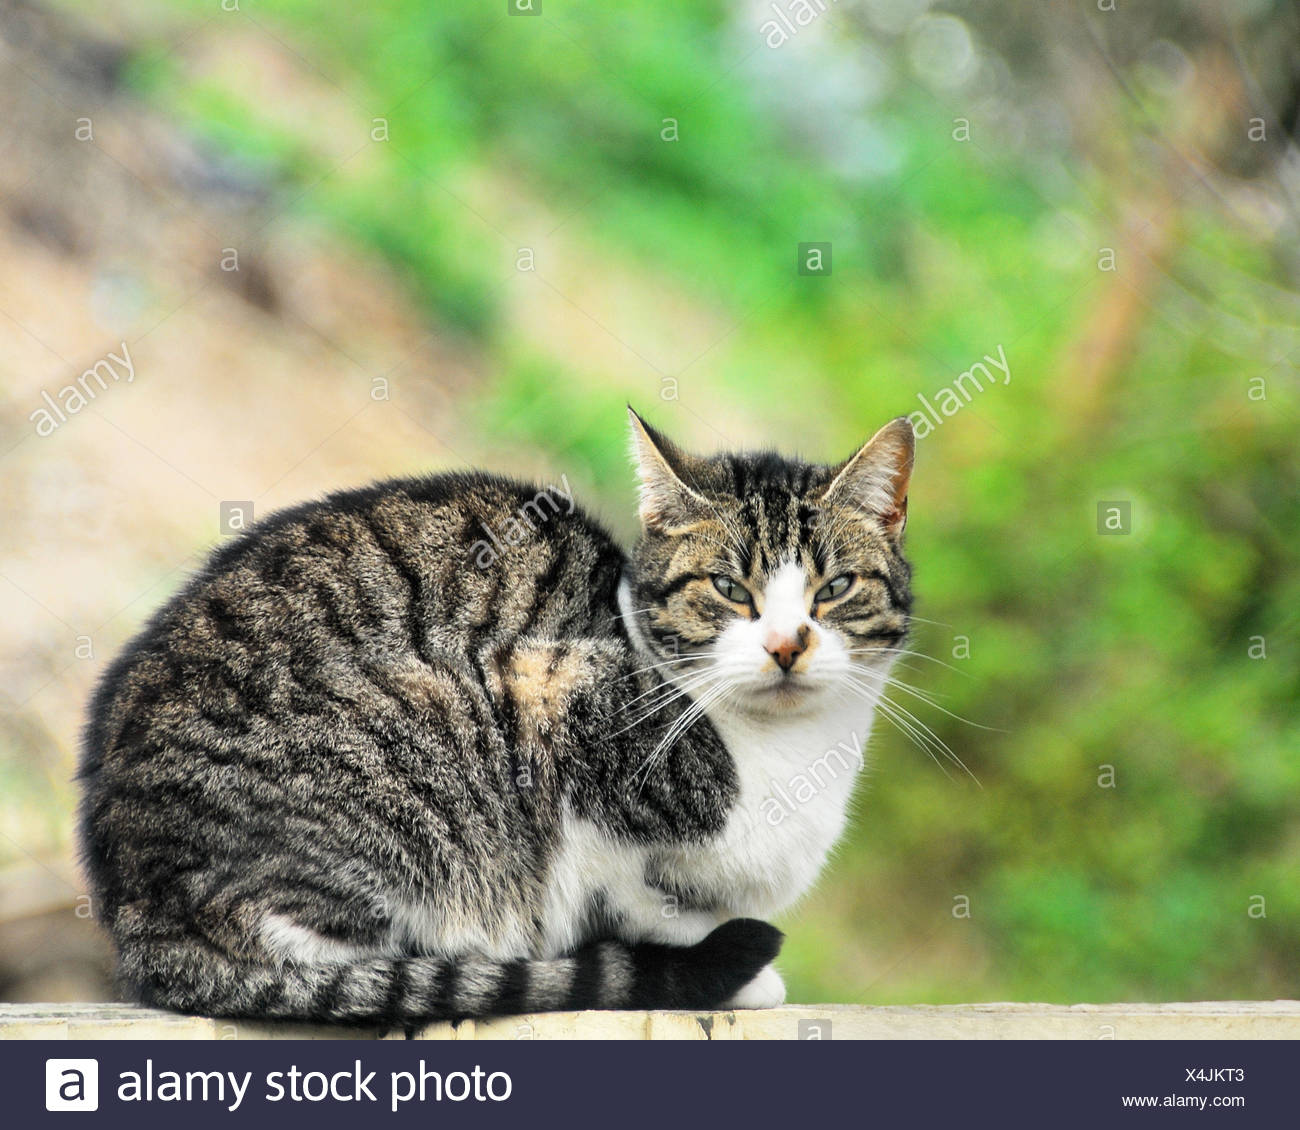 Pretty Cat Stock Photos Amp Pretty Cat Stock Images Alamy